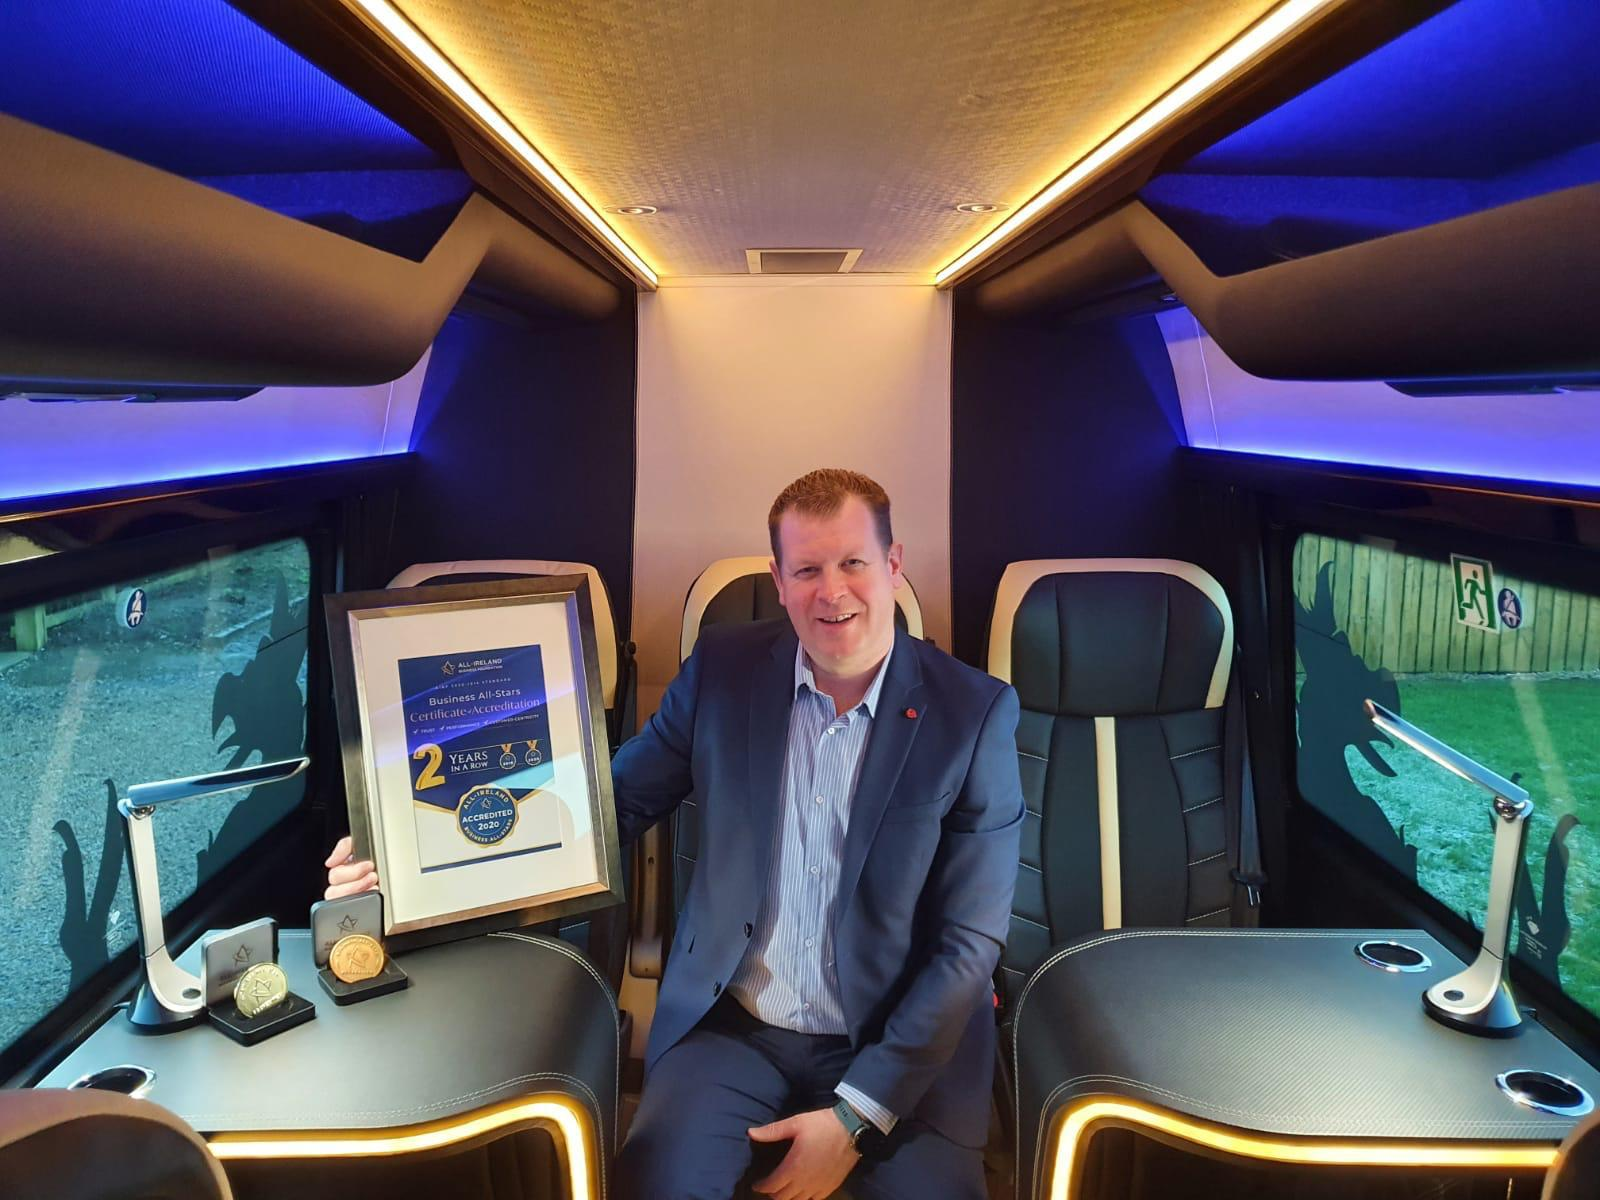 Luxury guided Tours of Ireland All-Ireland All-Star Coach Hire Company 2021